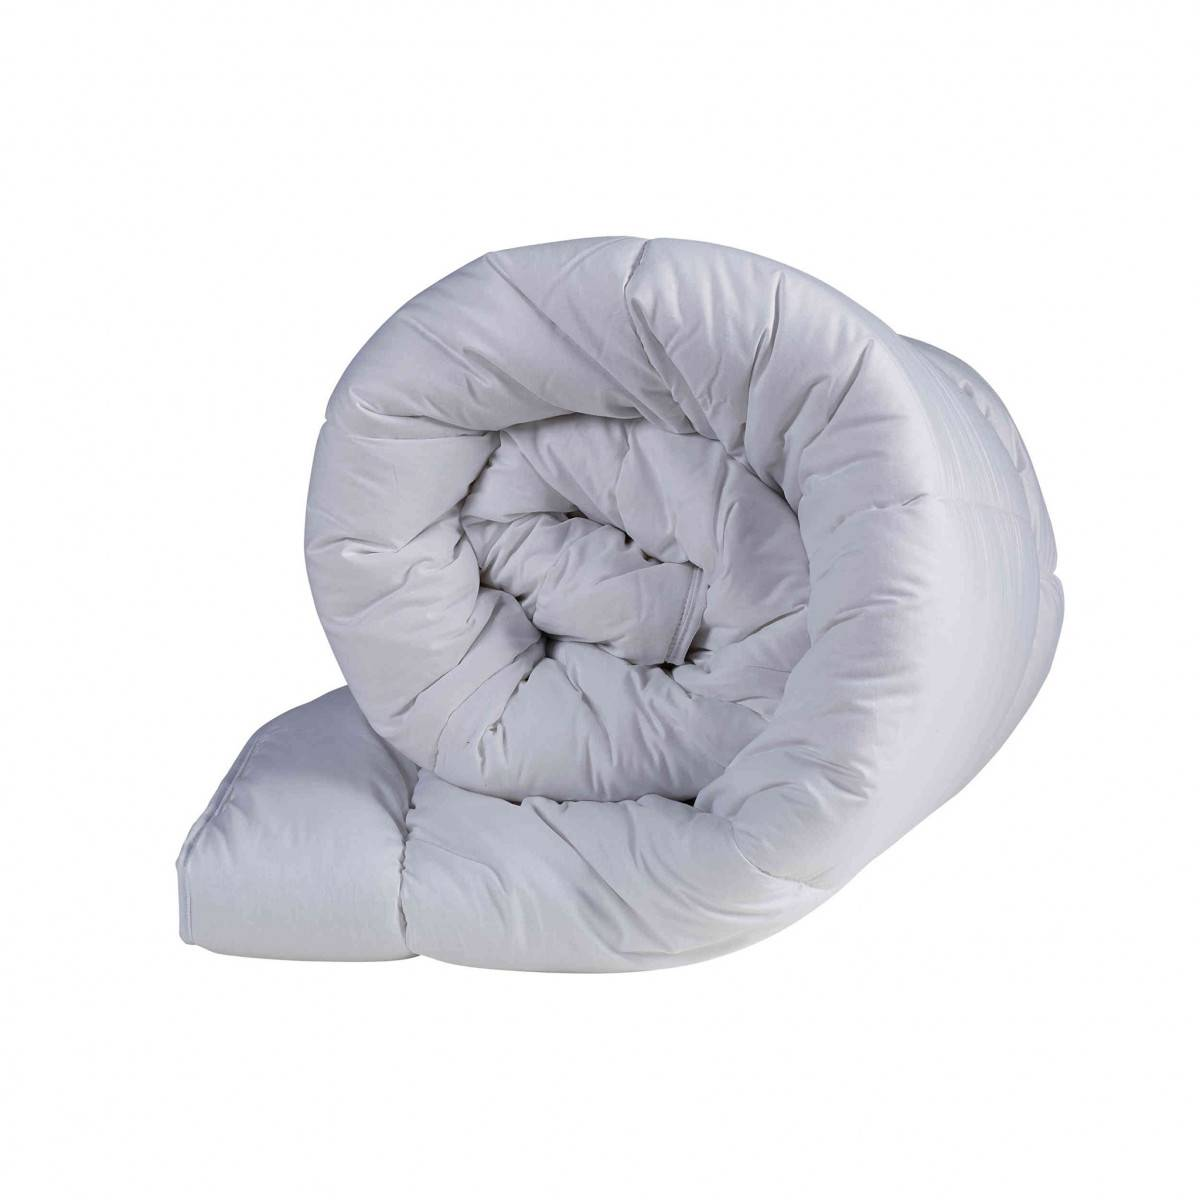 Someo Couette hiver anti-acariens 600g SOMEO 240x220